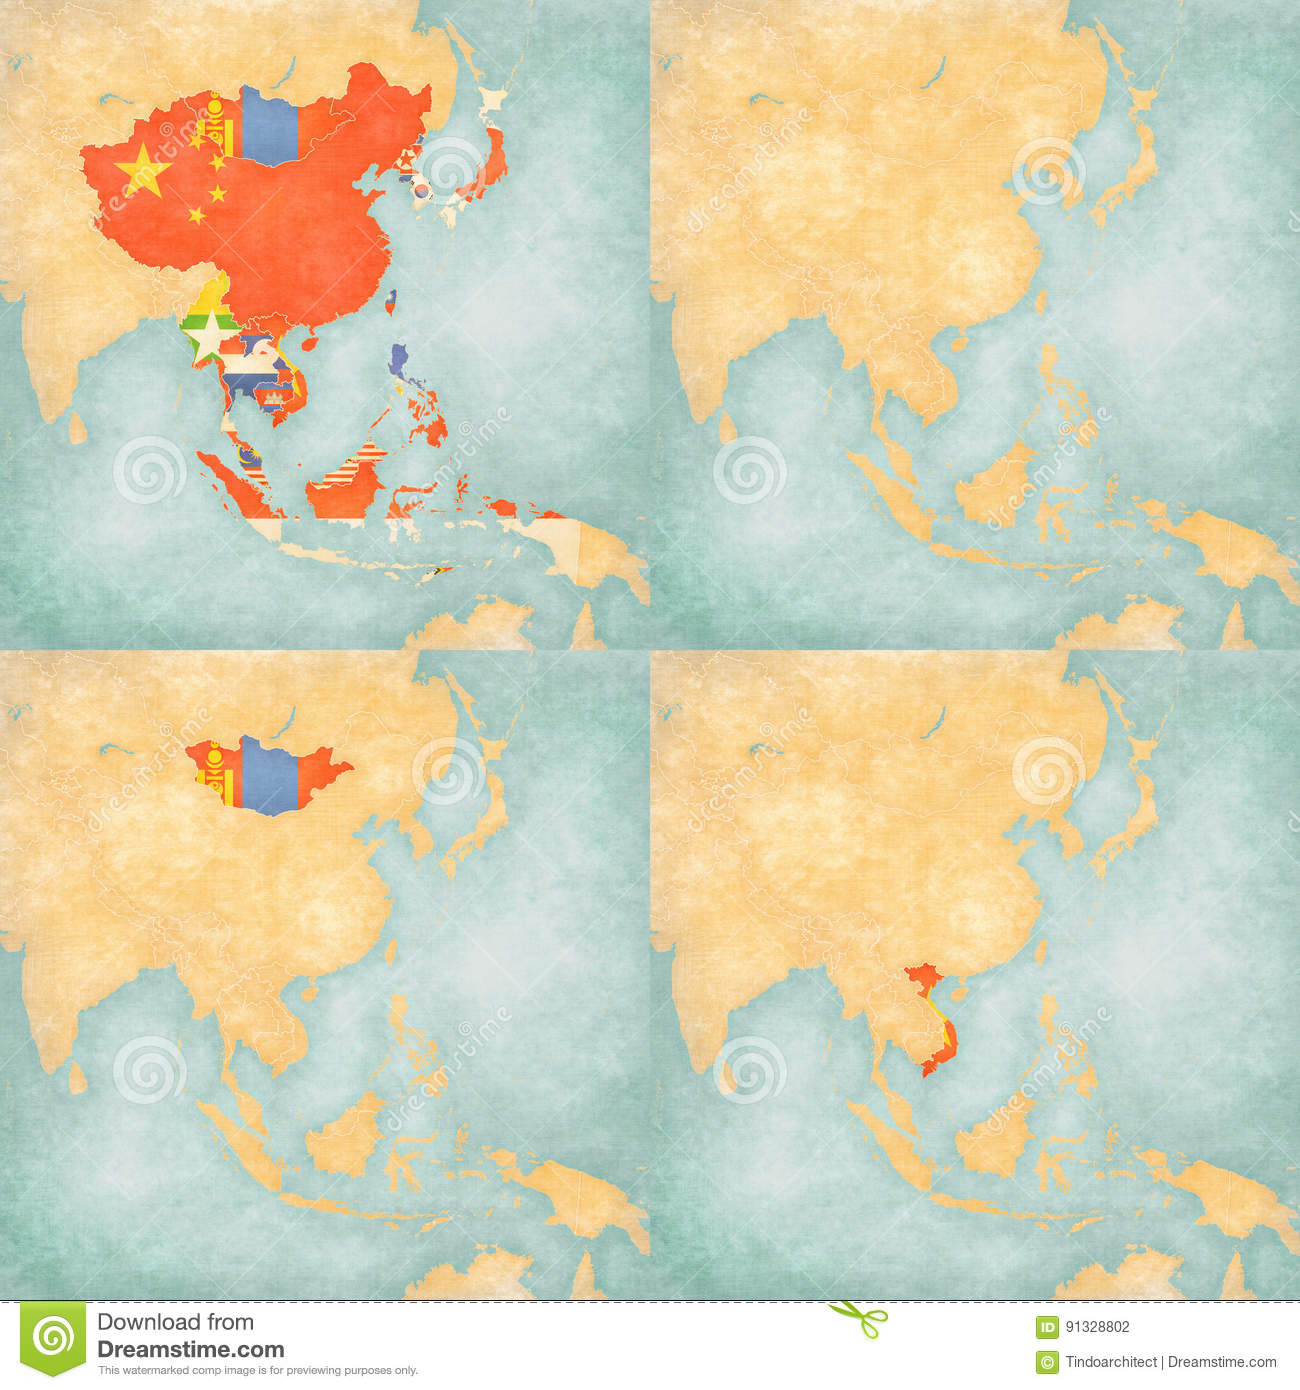 The Map Of East Asia.Map Of East Asia Blank Map All Countries Mongolia And Vietnam